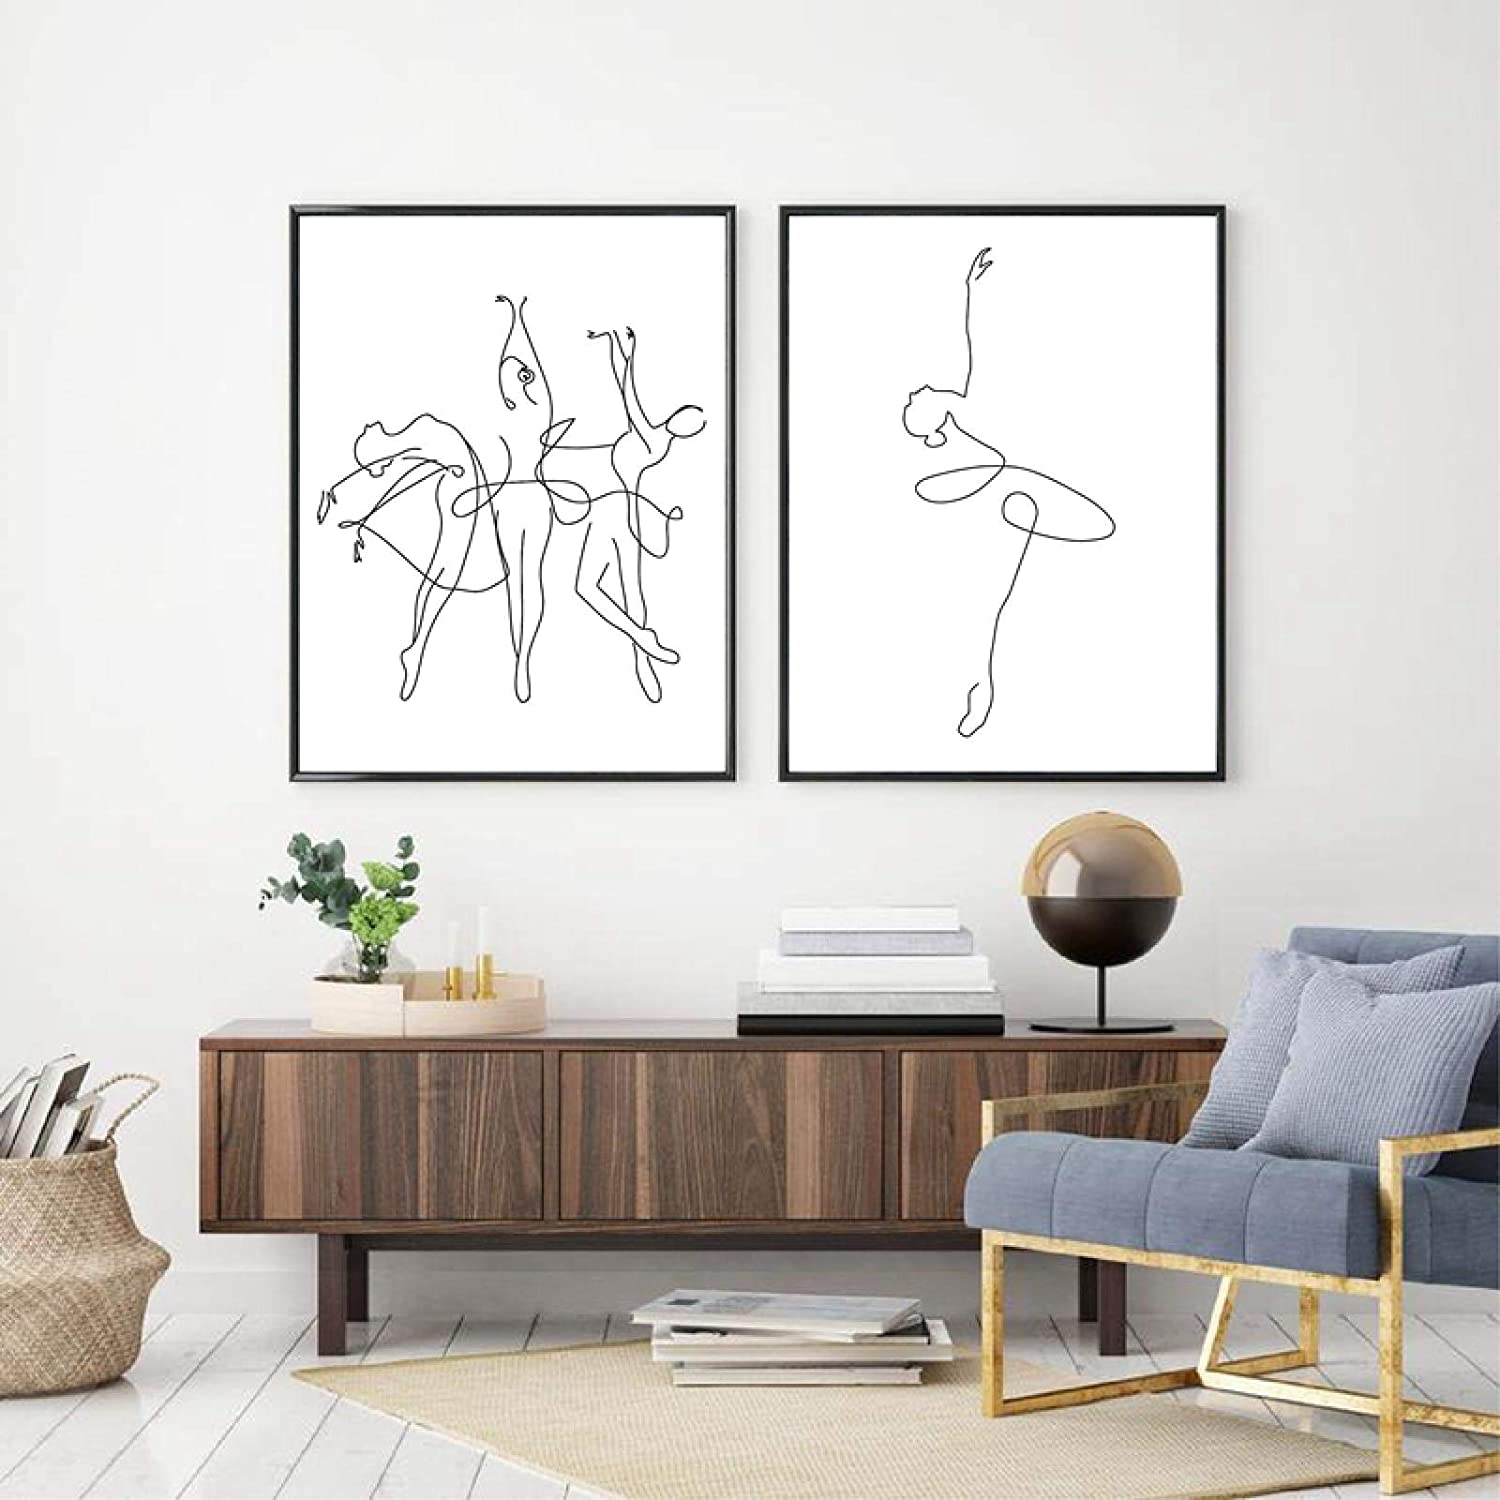 Abstract Ballerina Print One Line Drawing Body Canvas Art Max 70% OFF Ultra-Cheap Deals Painti